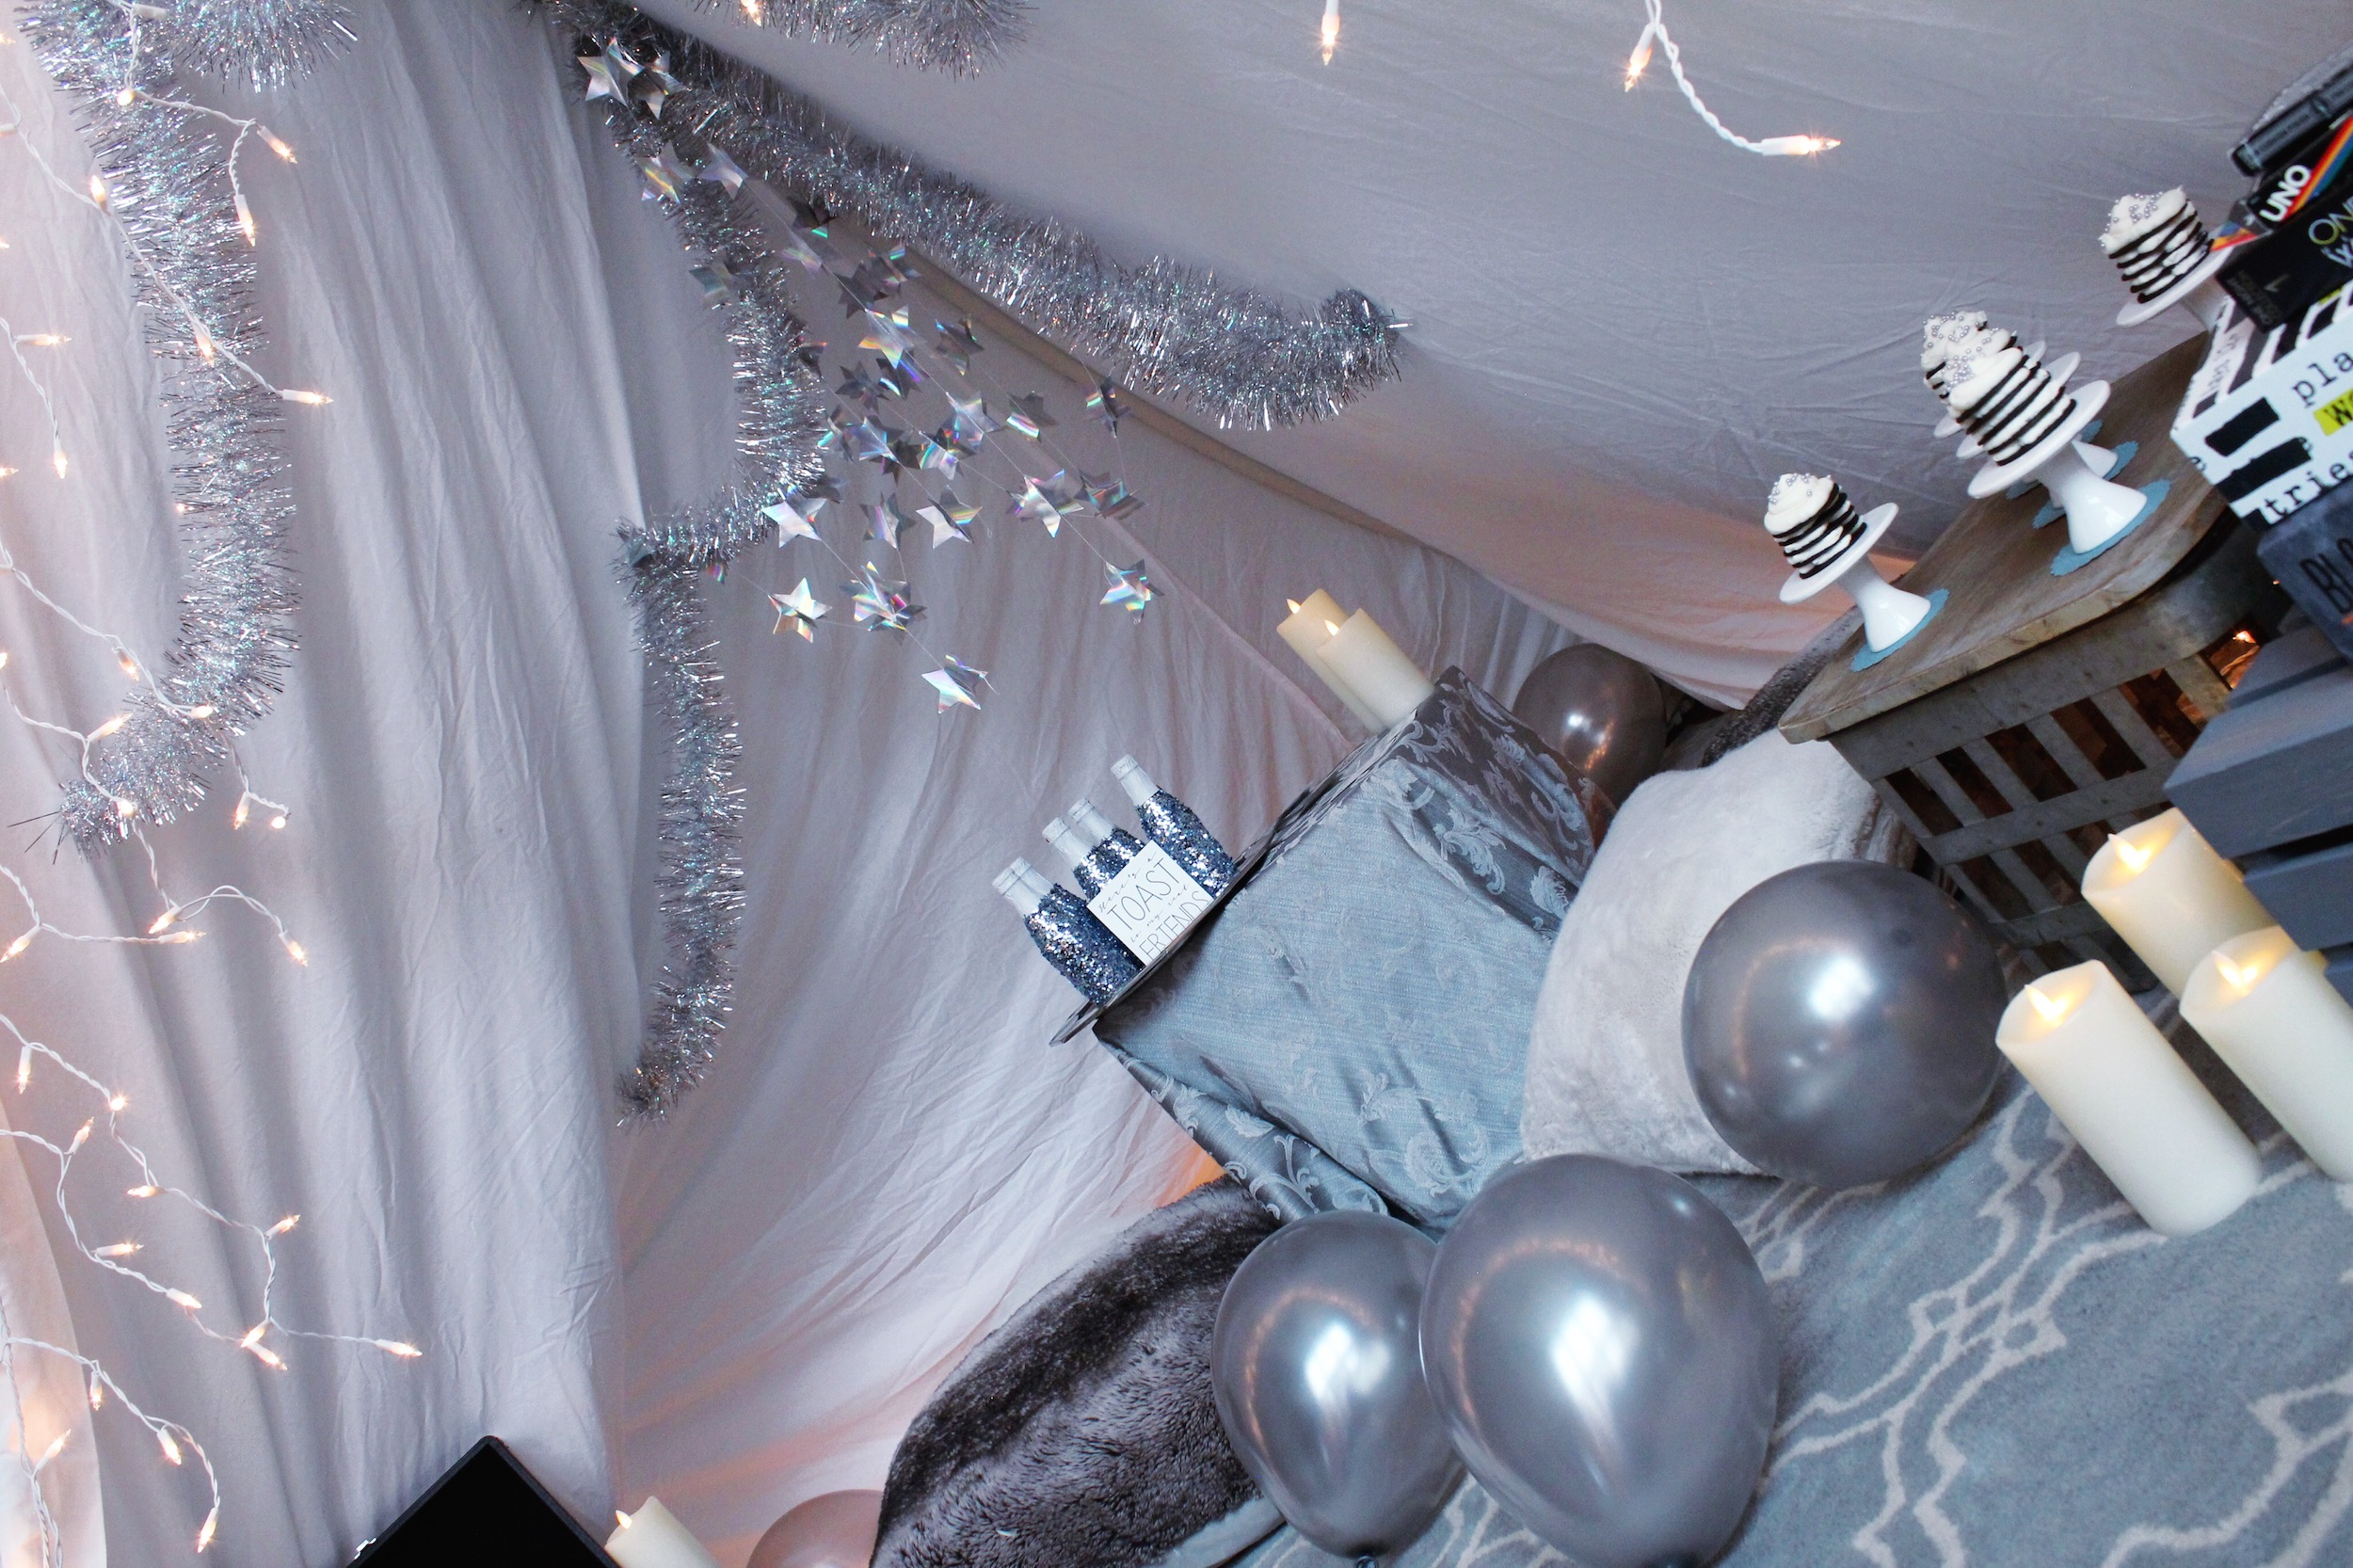 New Year's Eve Taylor Swift Reputation Blanket Fort Decorations_Design Organize Party.JPG